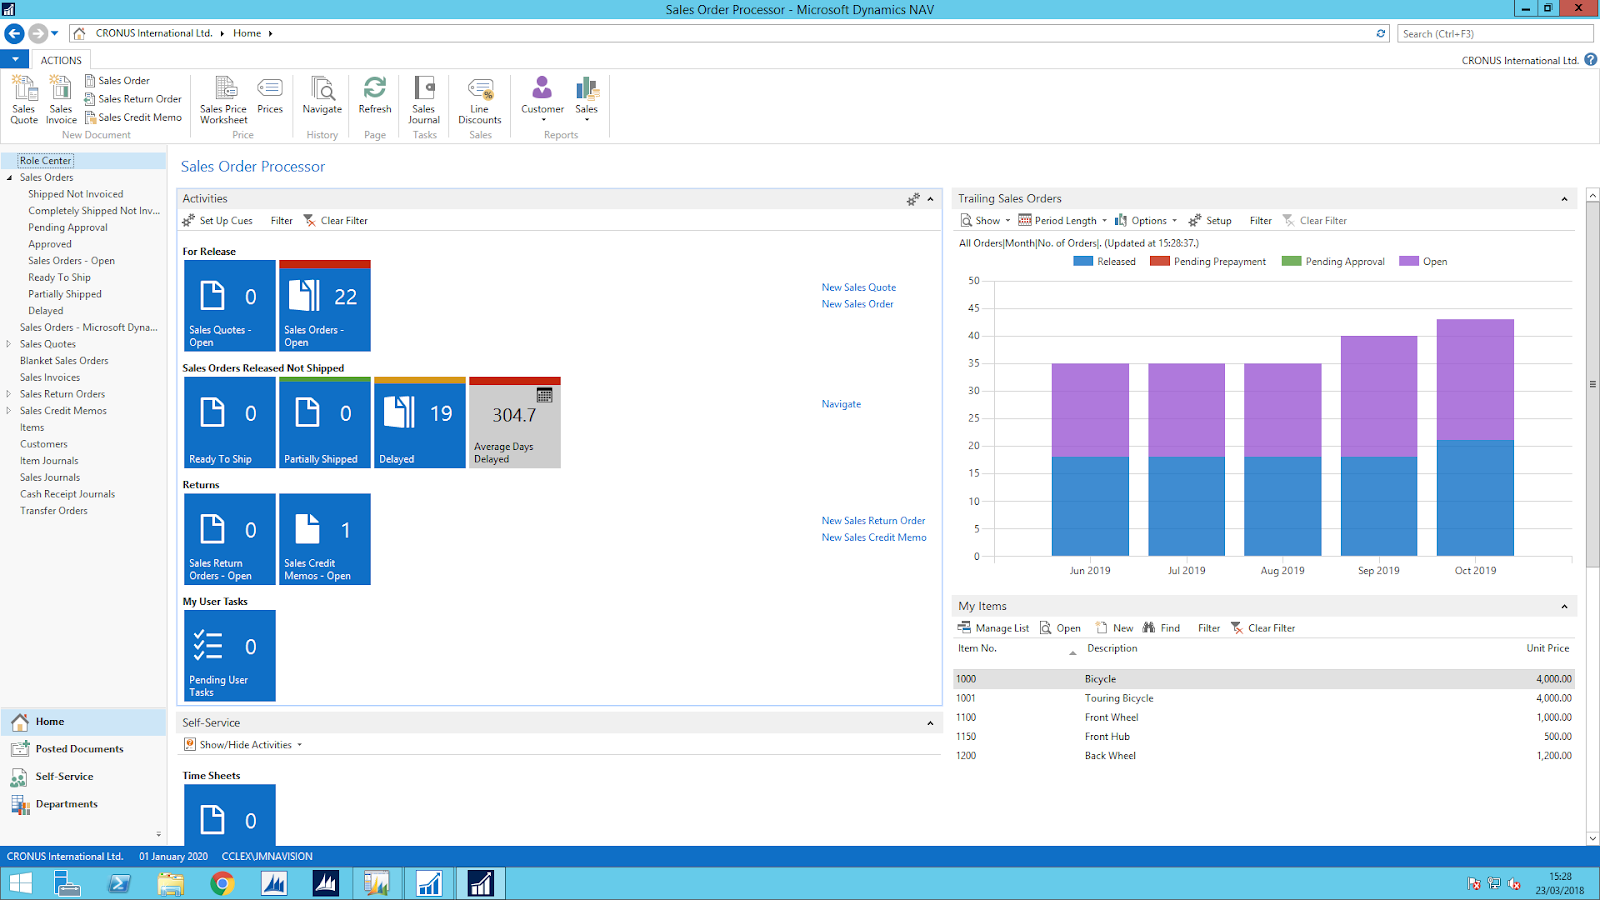 Microsoft Dynamics, the completely modular management solution